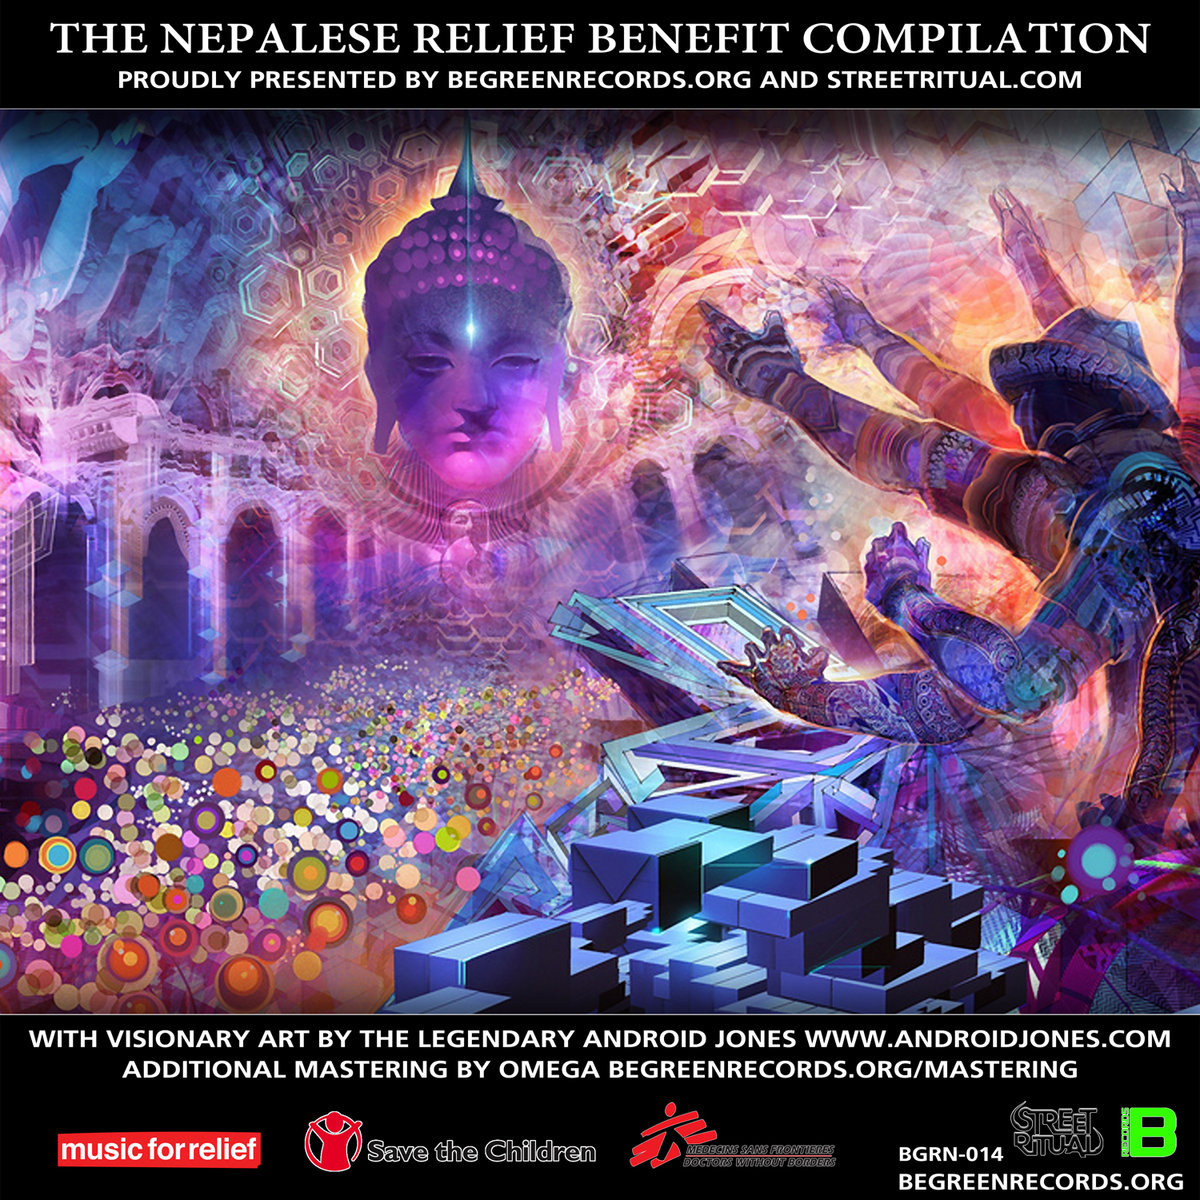 Subatomica feat. Gina Ferrera - Kunda's Song @ 'Various Artists - The Nepalese Relief Benefit Compilation' album (bass, electronic)